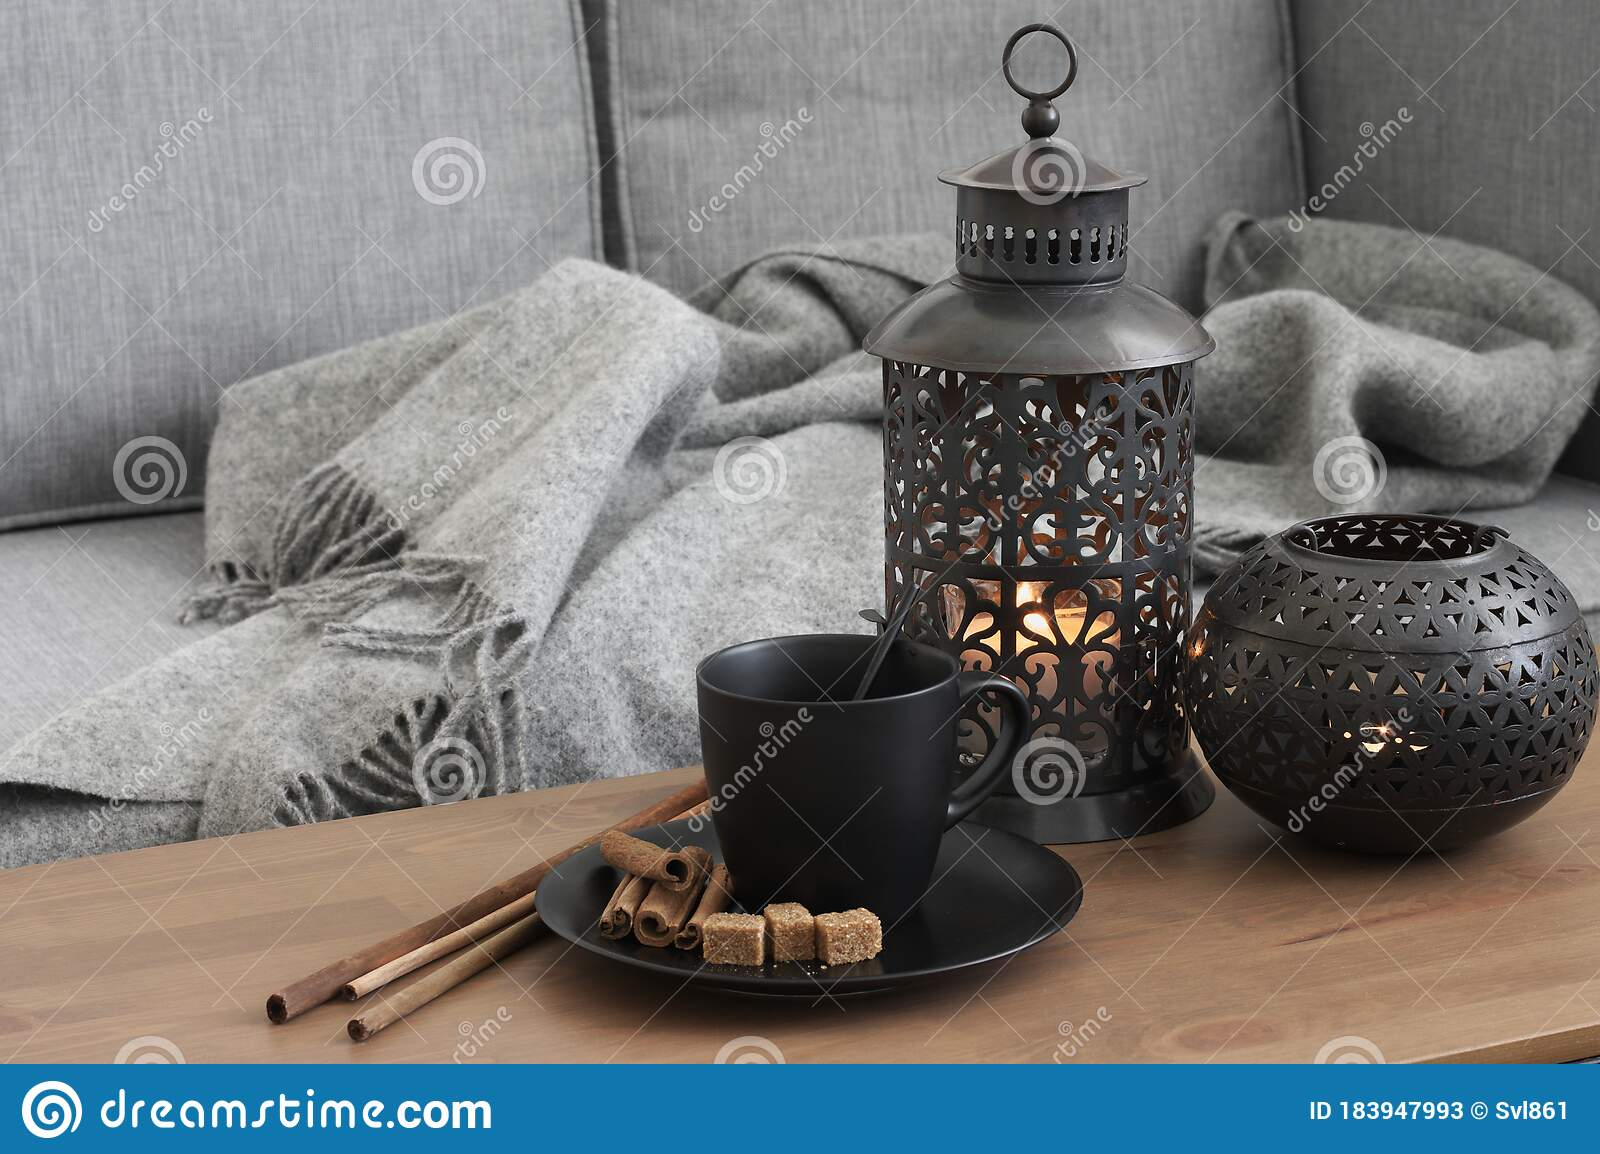 Home Interior Decor In Living Room Stock Image Image Of Black Mood 183947993